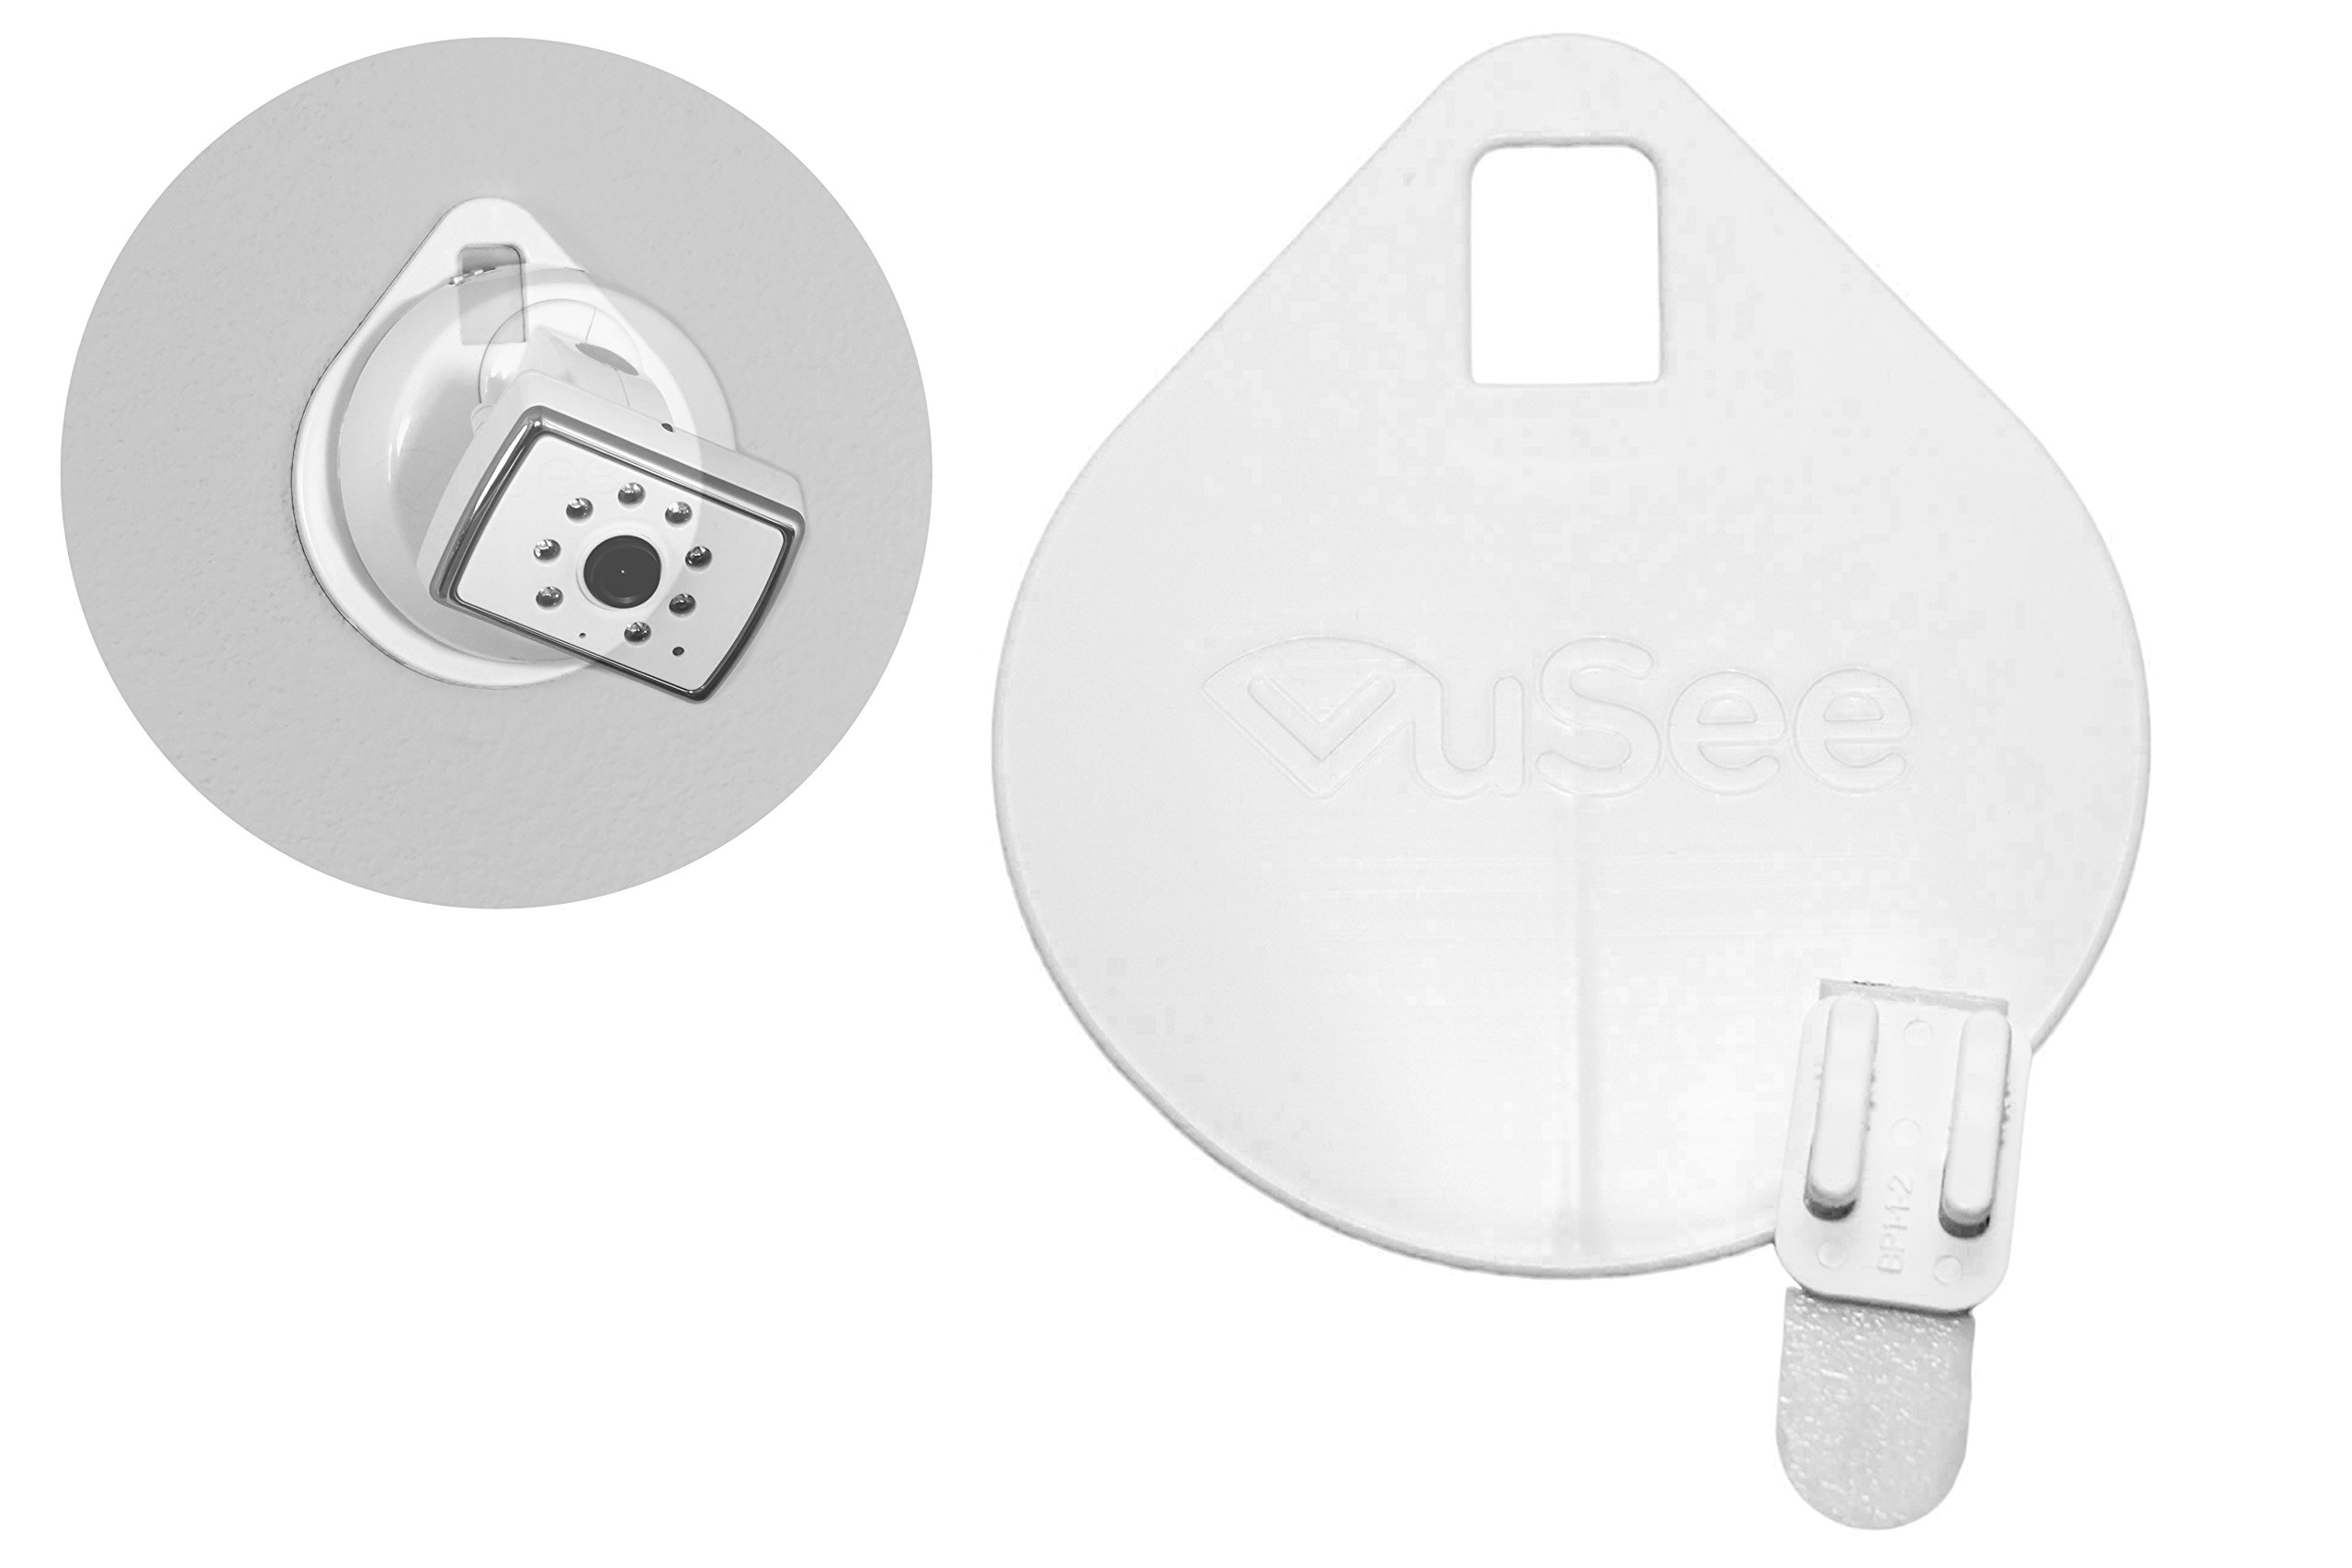 VuSee - The Universal Baby Monitor Shelf (Flat) - Compatible with Most Baby Monitors - Damage Free Installation